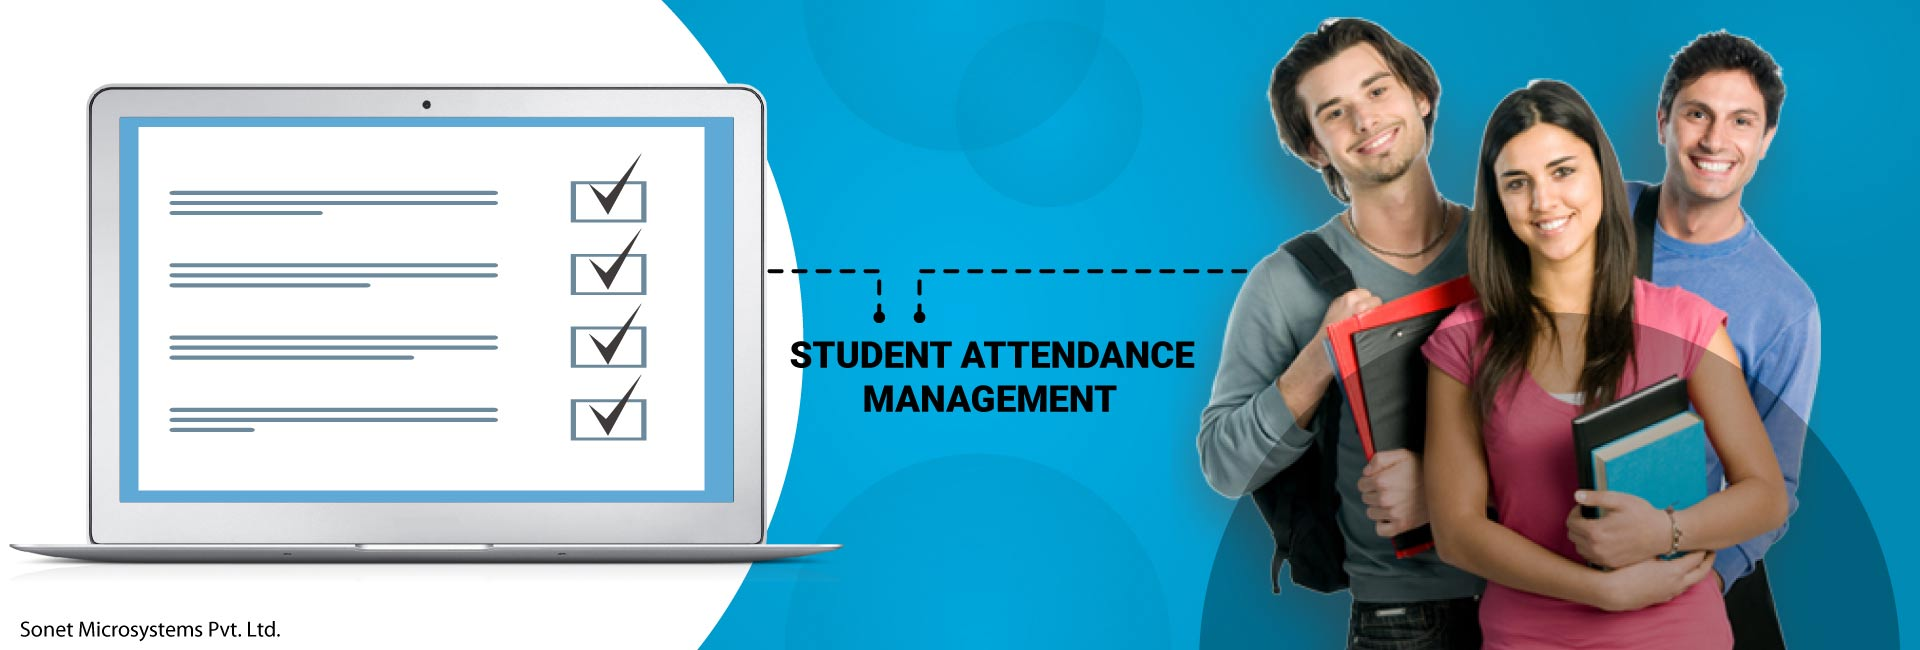 student attendance management, attendance management software